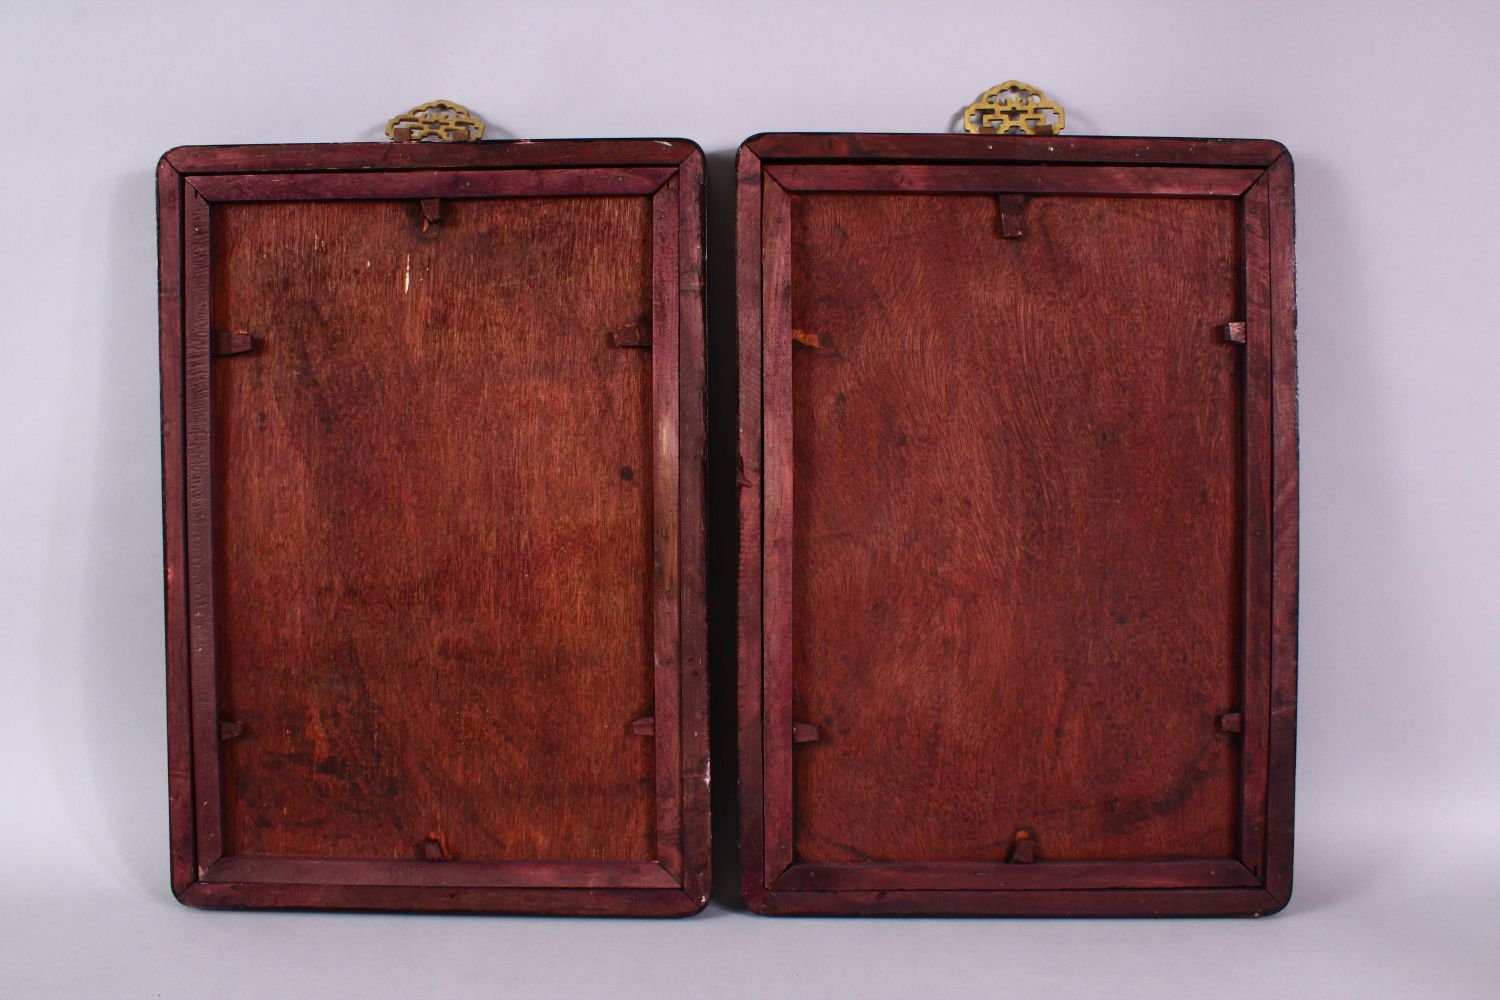 A PAIR OF REVERSE PAINTED FRAMED PICTURES, of young ladies, 34cm x 23cm. - Image 5 of 5